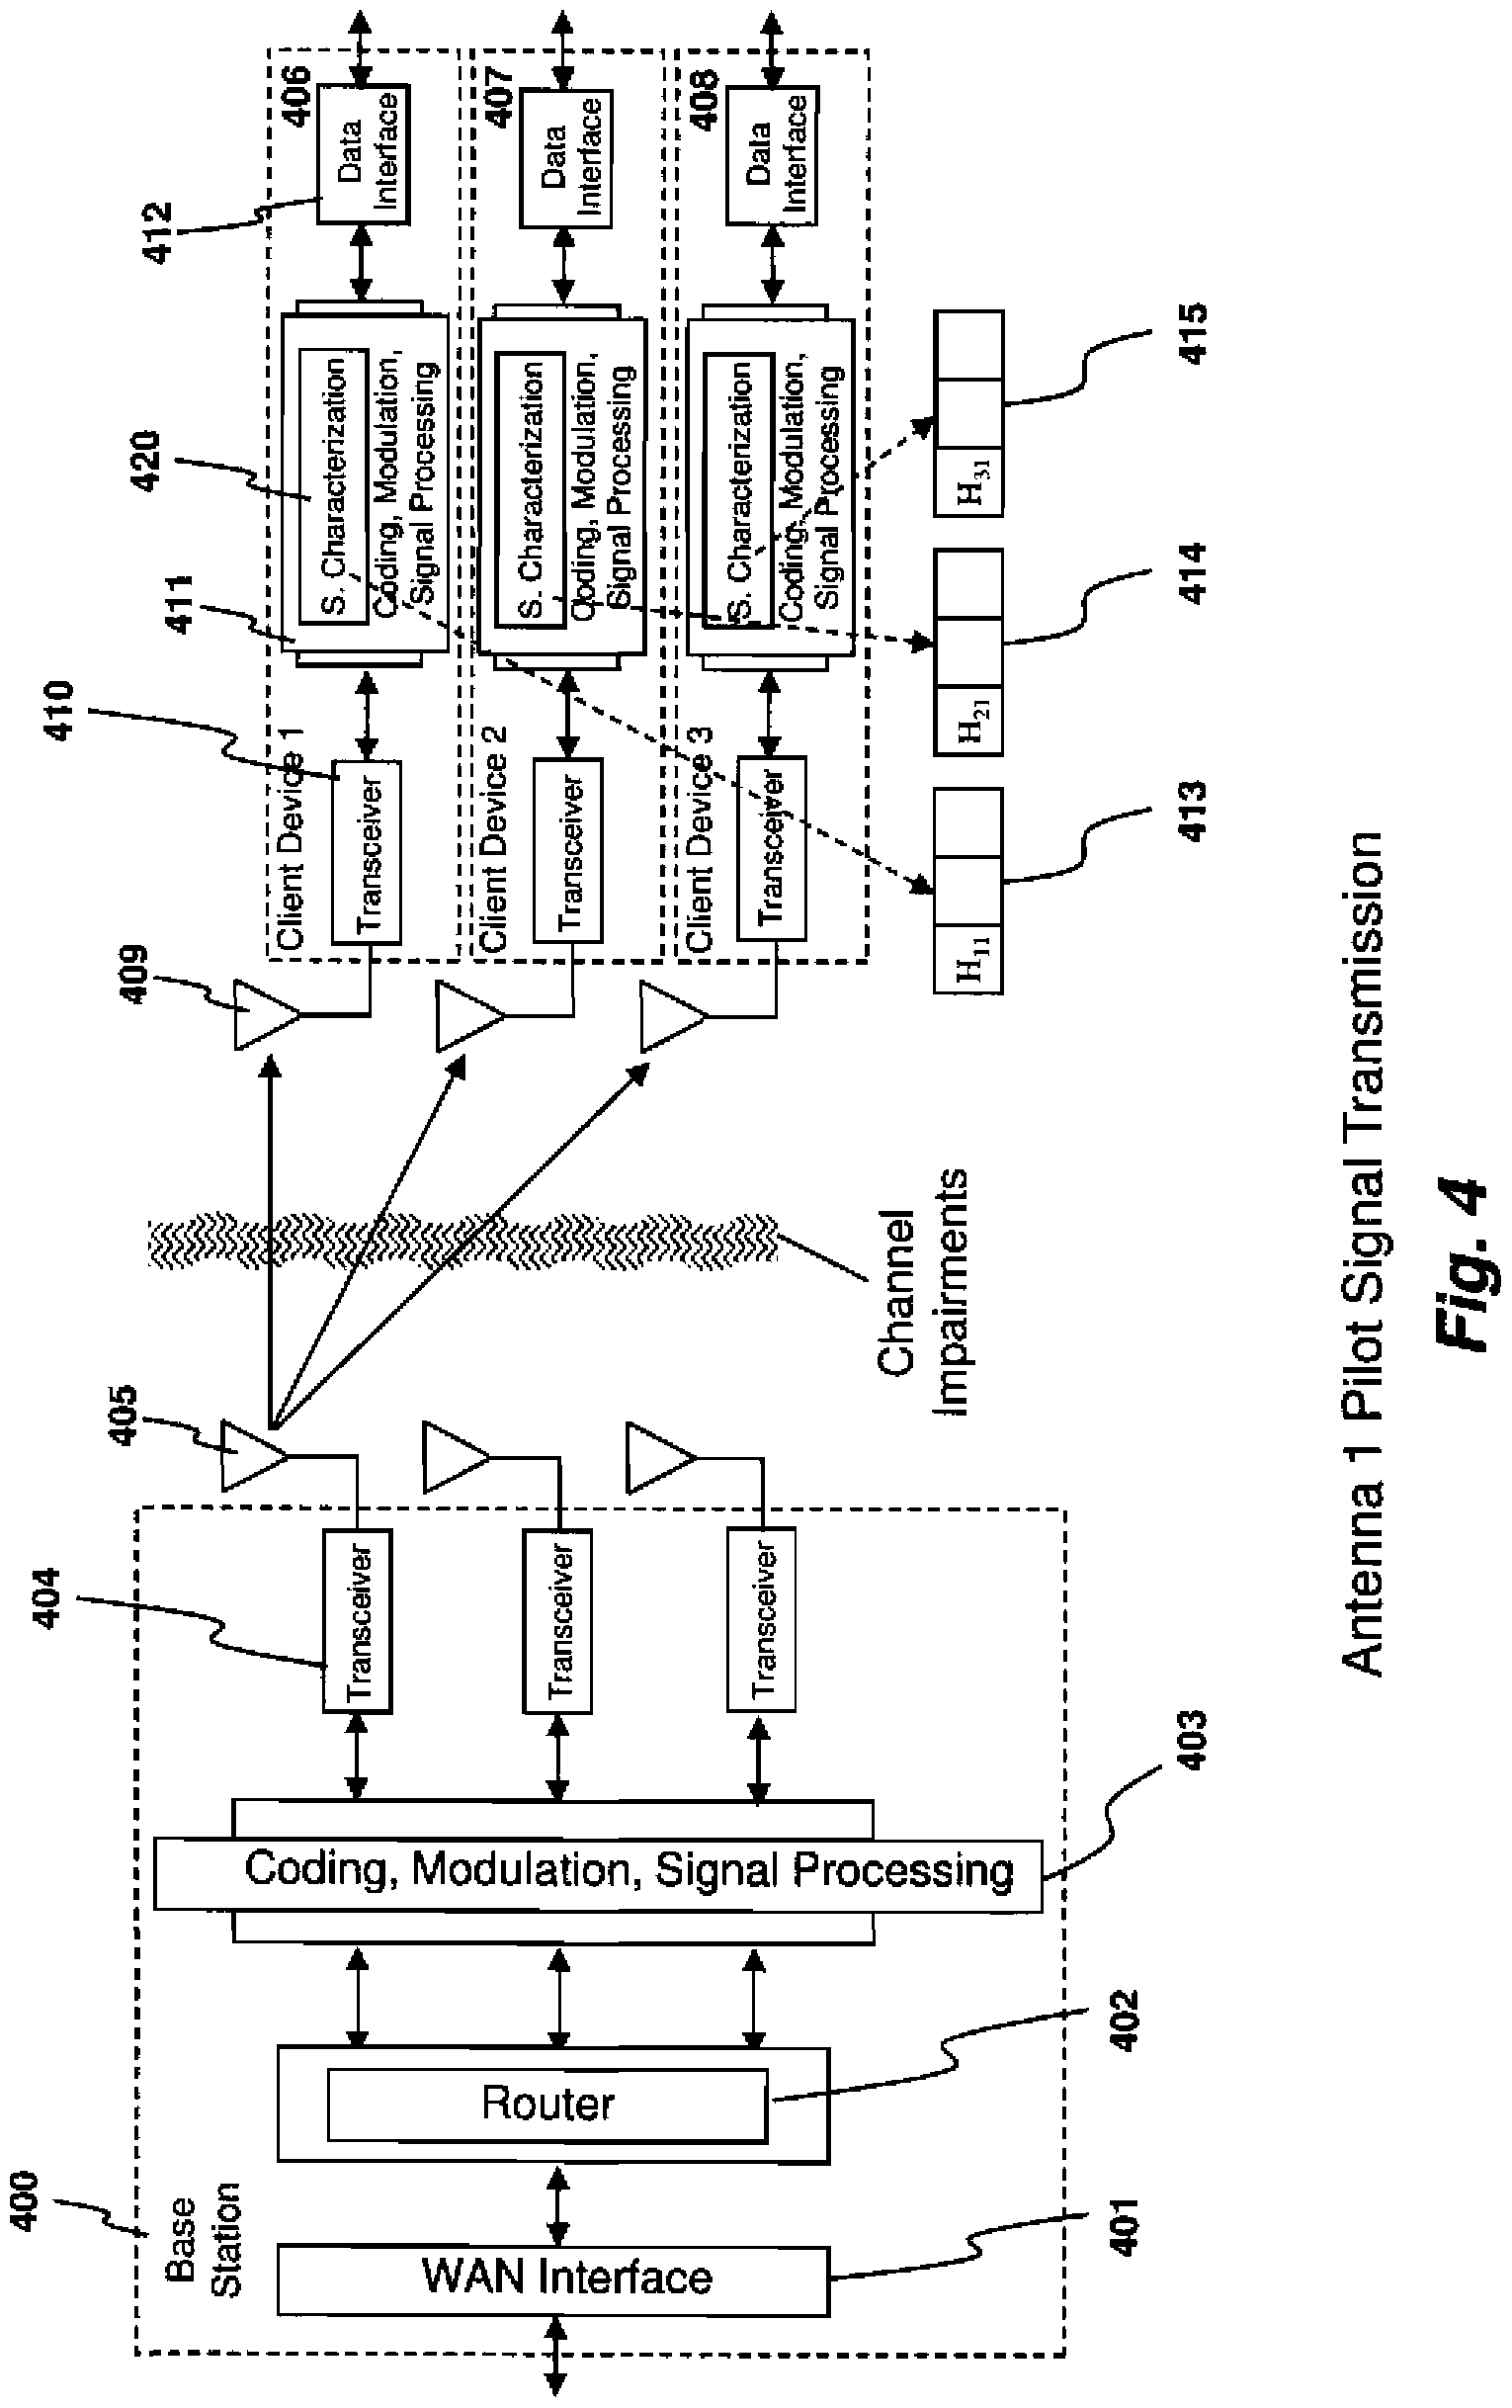 Wo2014055294a1 Systems And Methods For Wireless Backhaul In Receiver Wiring Diagram Meyer Figure Imgf000222 0001